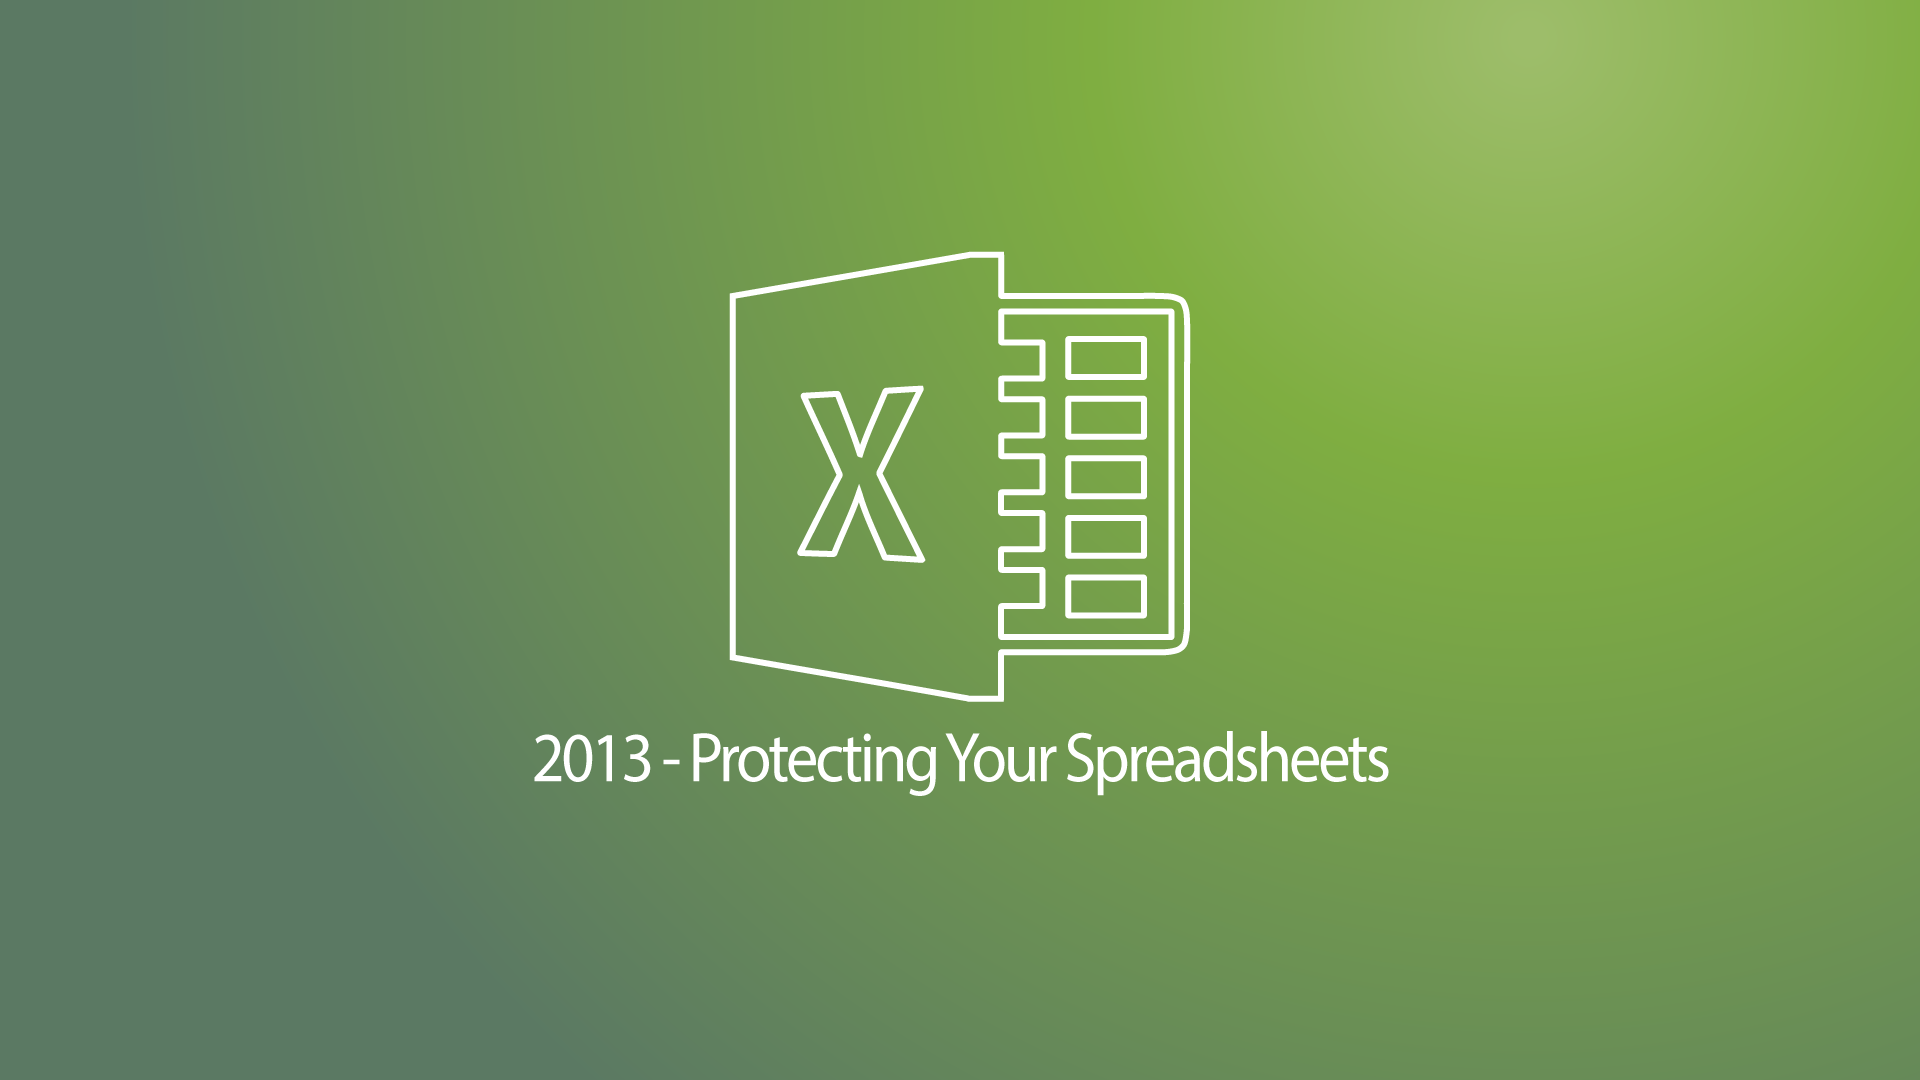 Excel 2013 - Protecting Your Spreadsheets